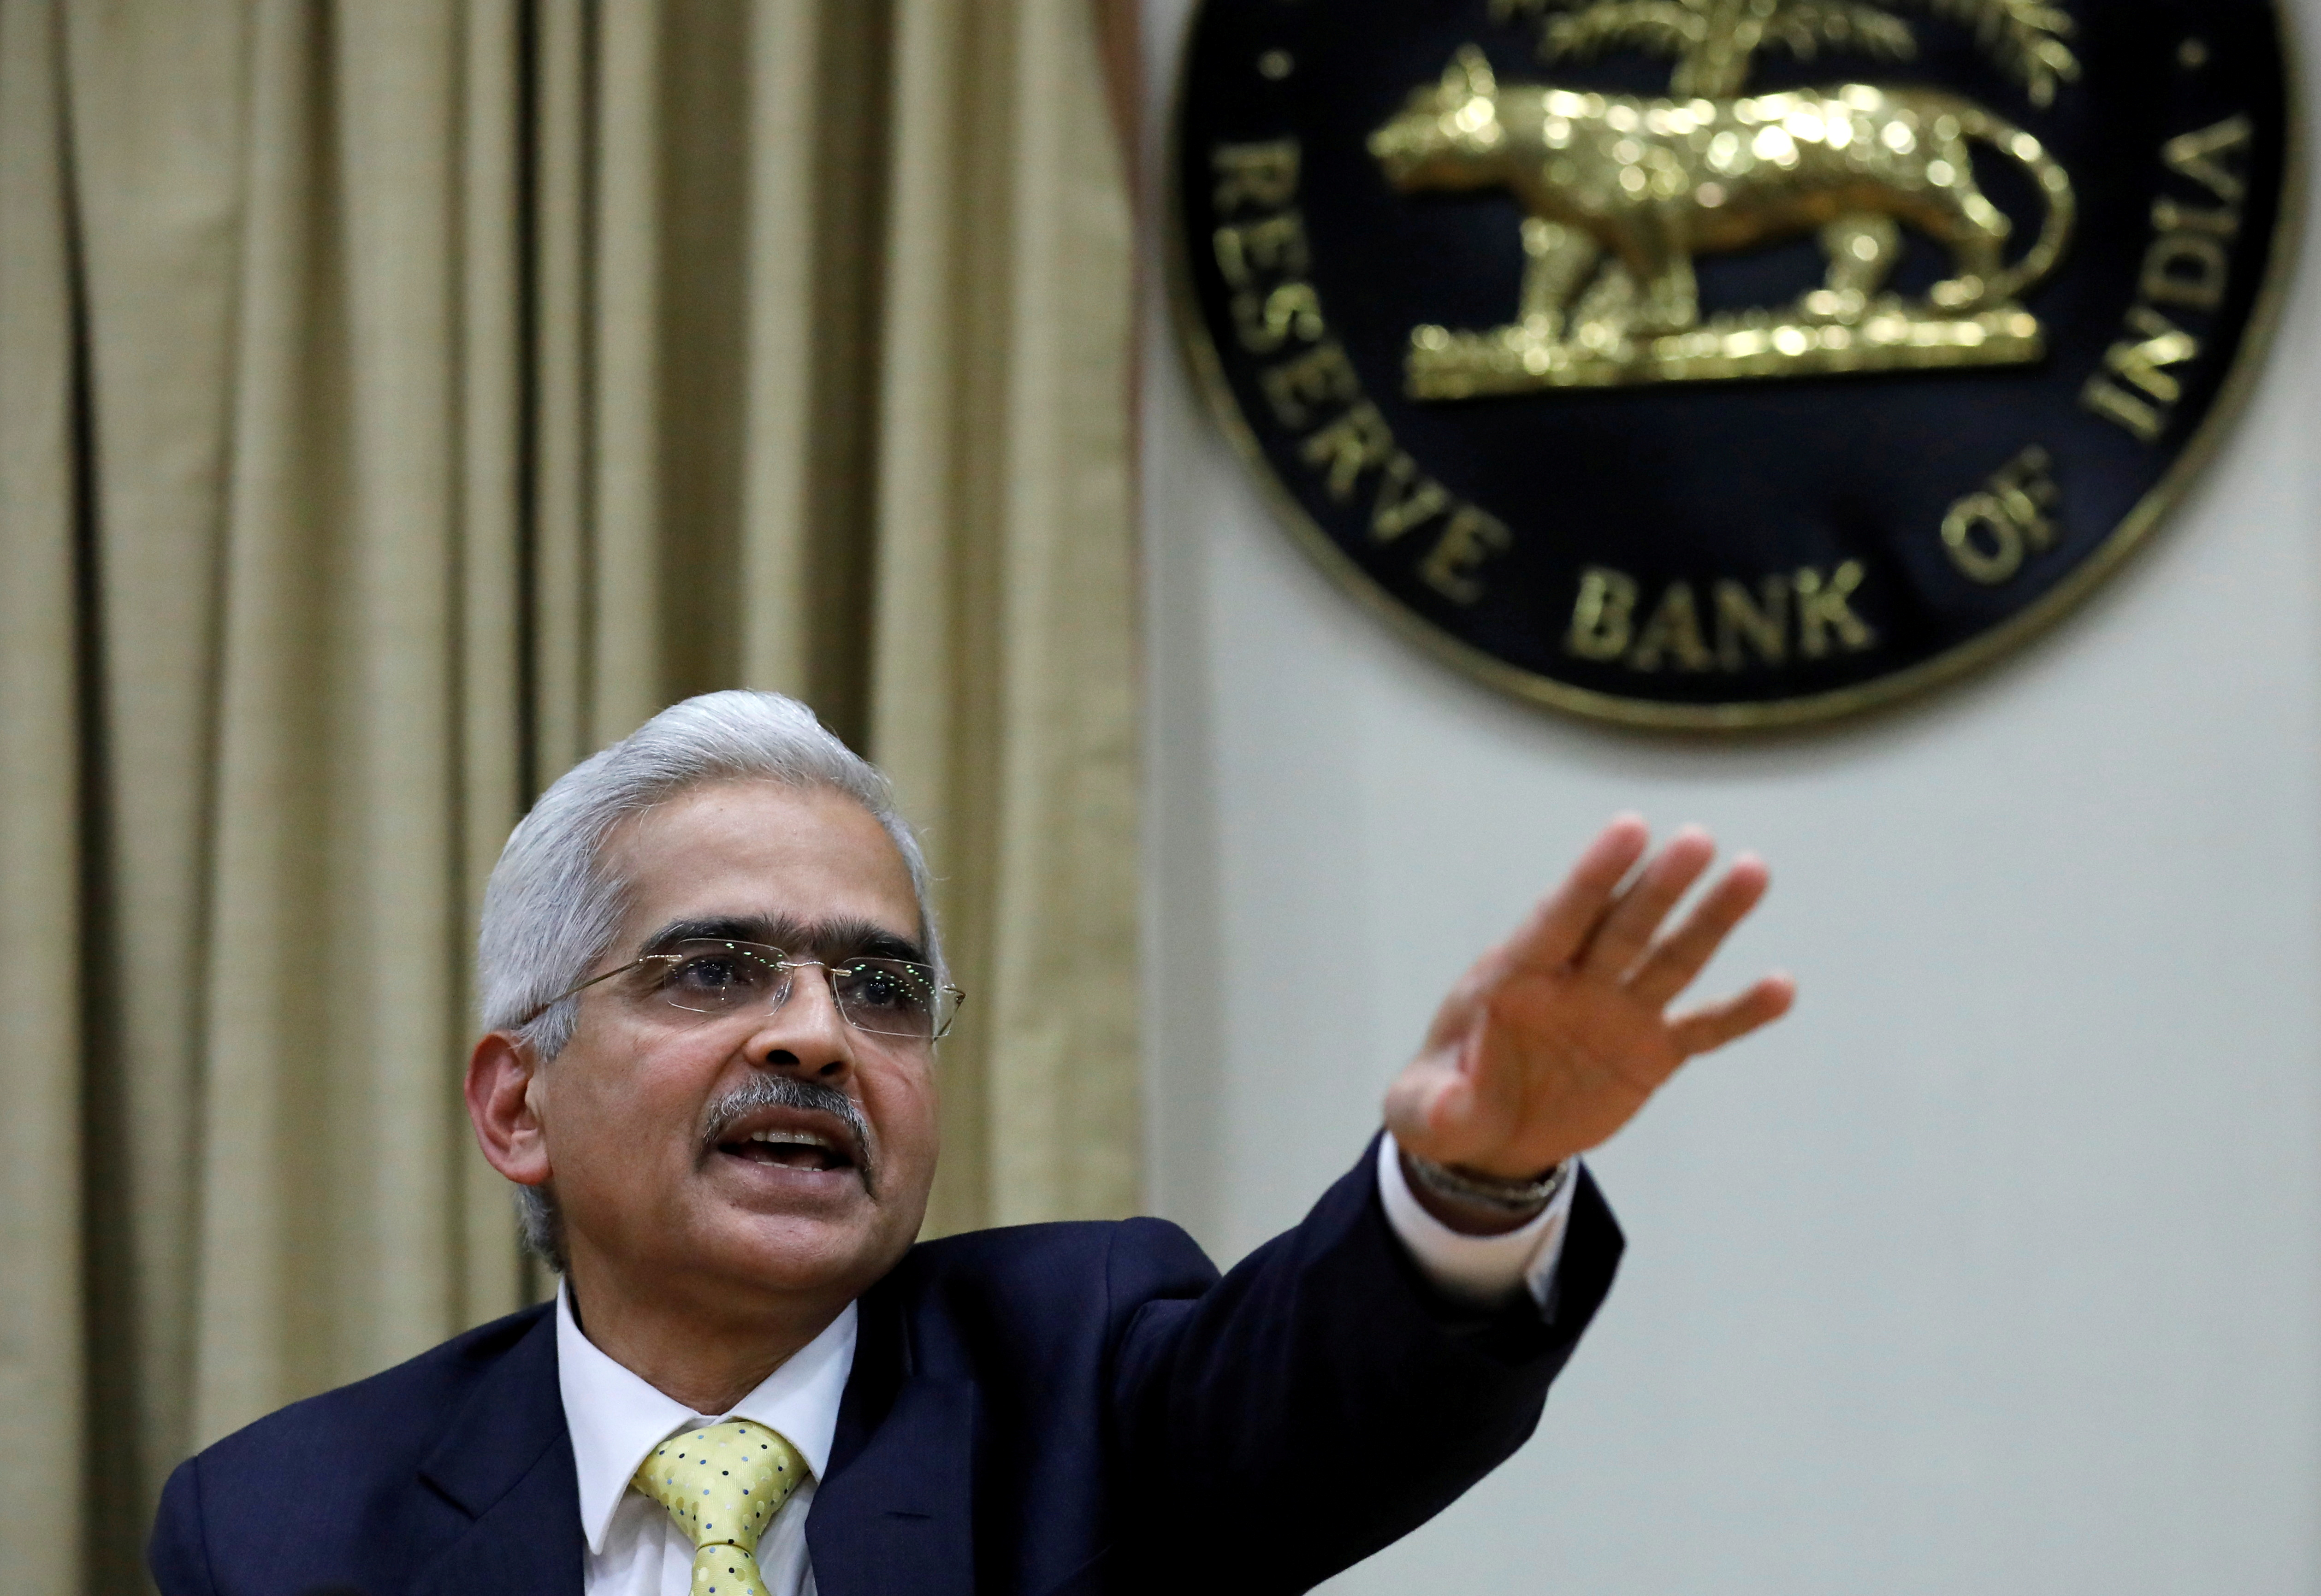 Shaktikanta Das, Reserve Bank of India (RBI) Governor, gestures as he attends a news conference in Mumbai, India, December 12, 2018. REUTERS/Danish Siddiqui